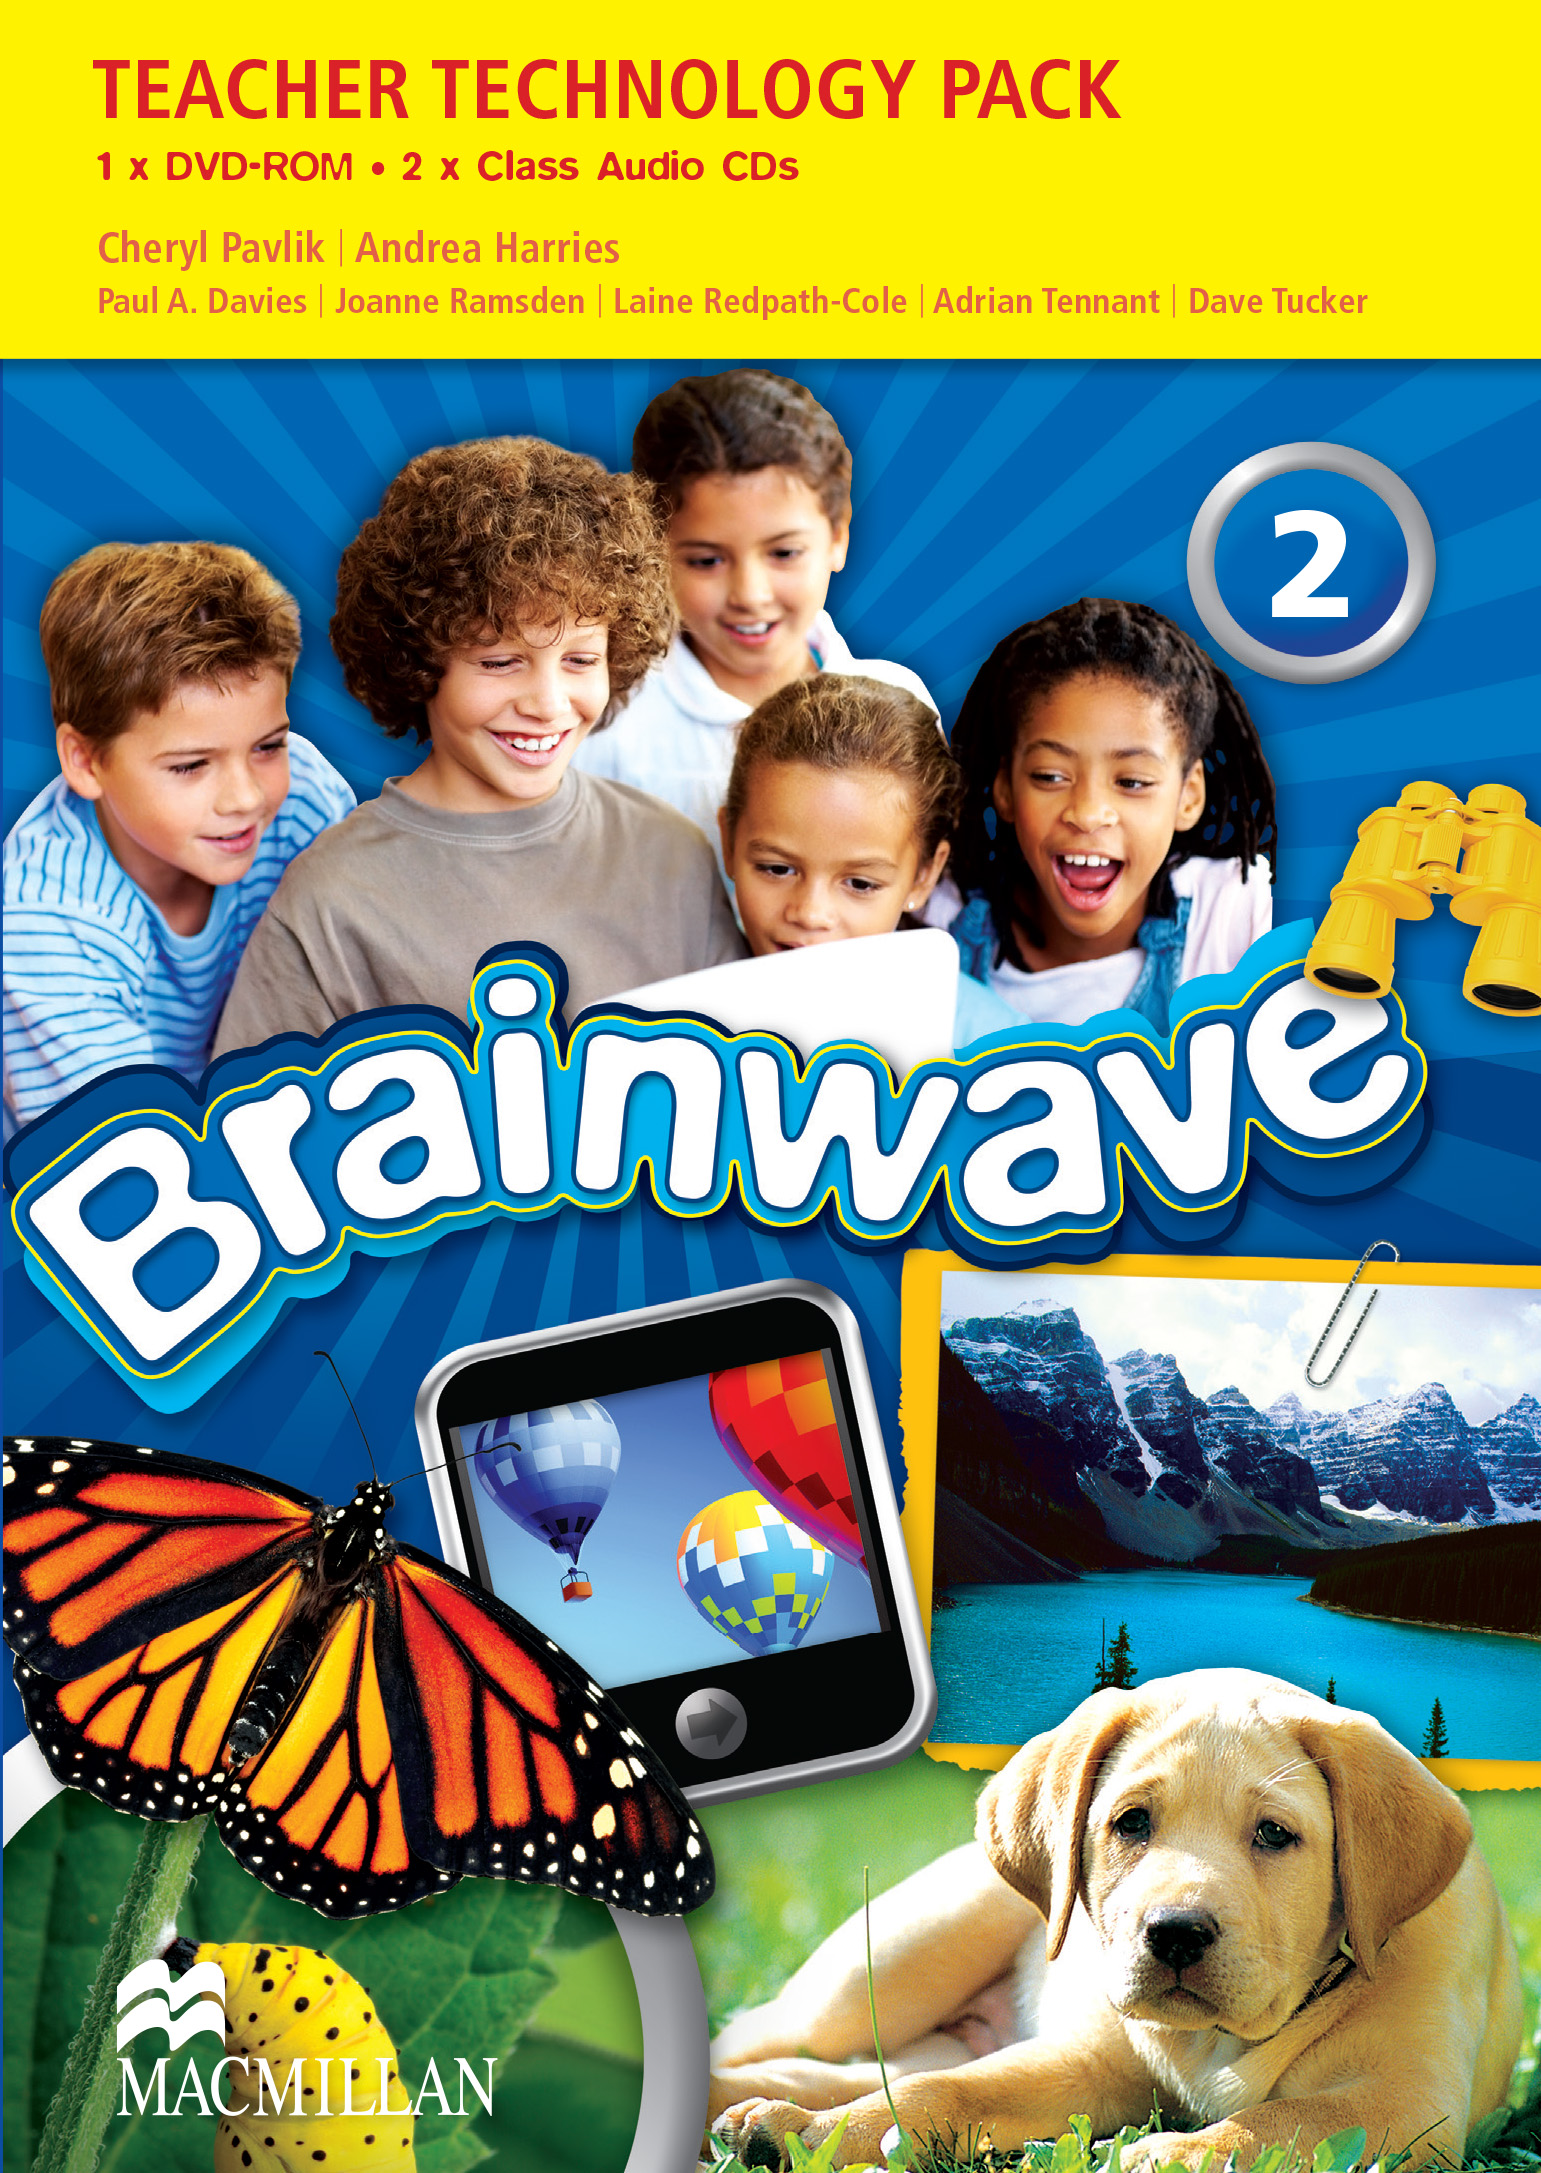 Brainwave 2 Teacher Technology Pack